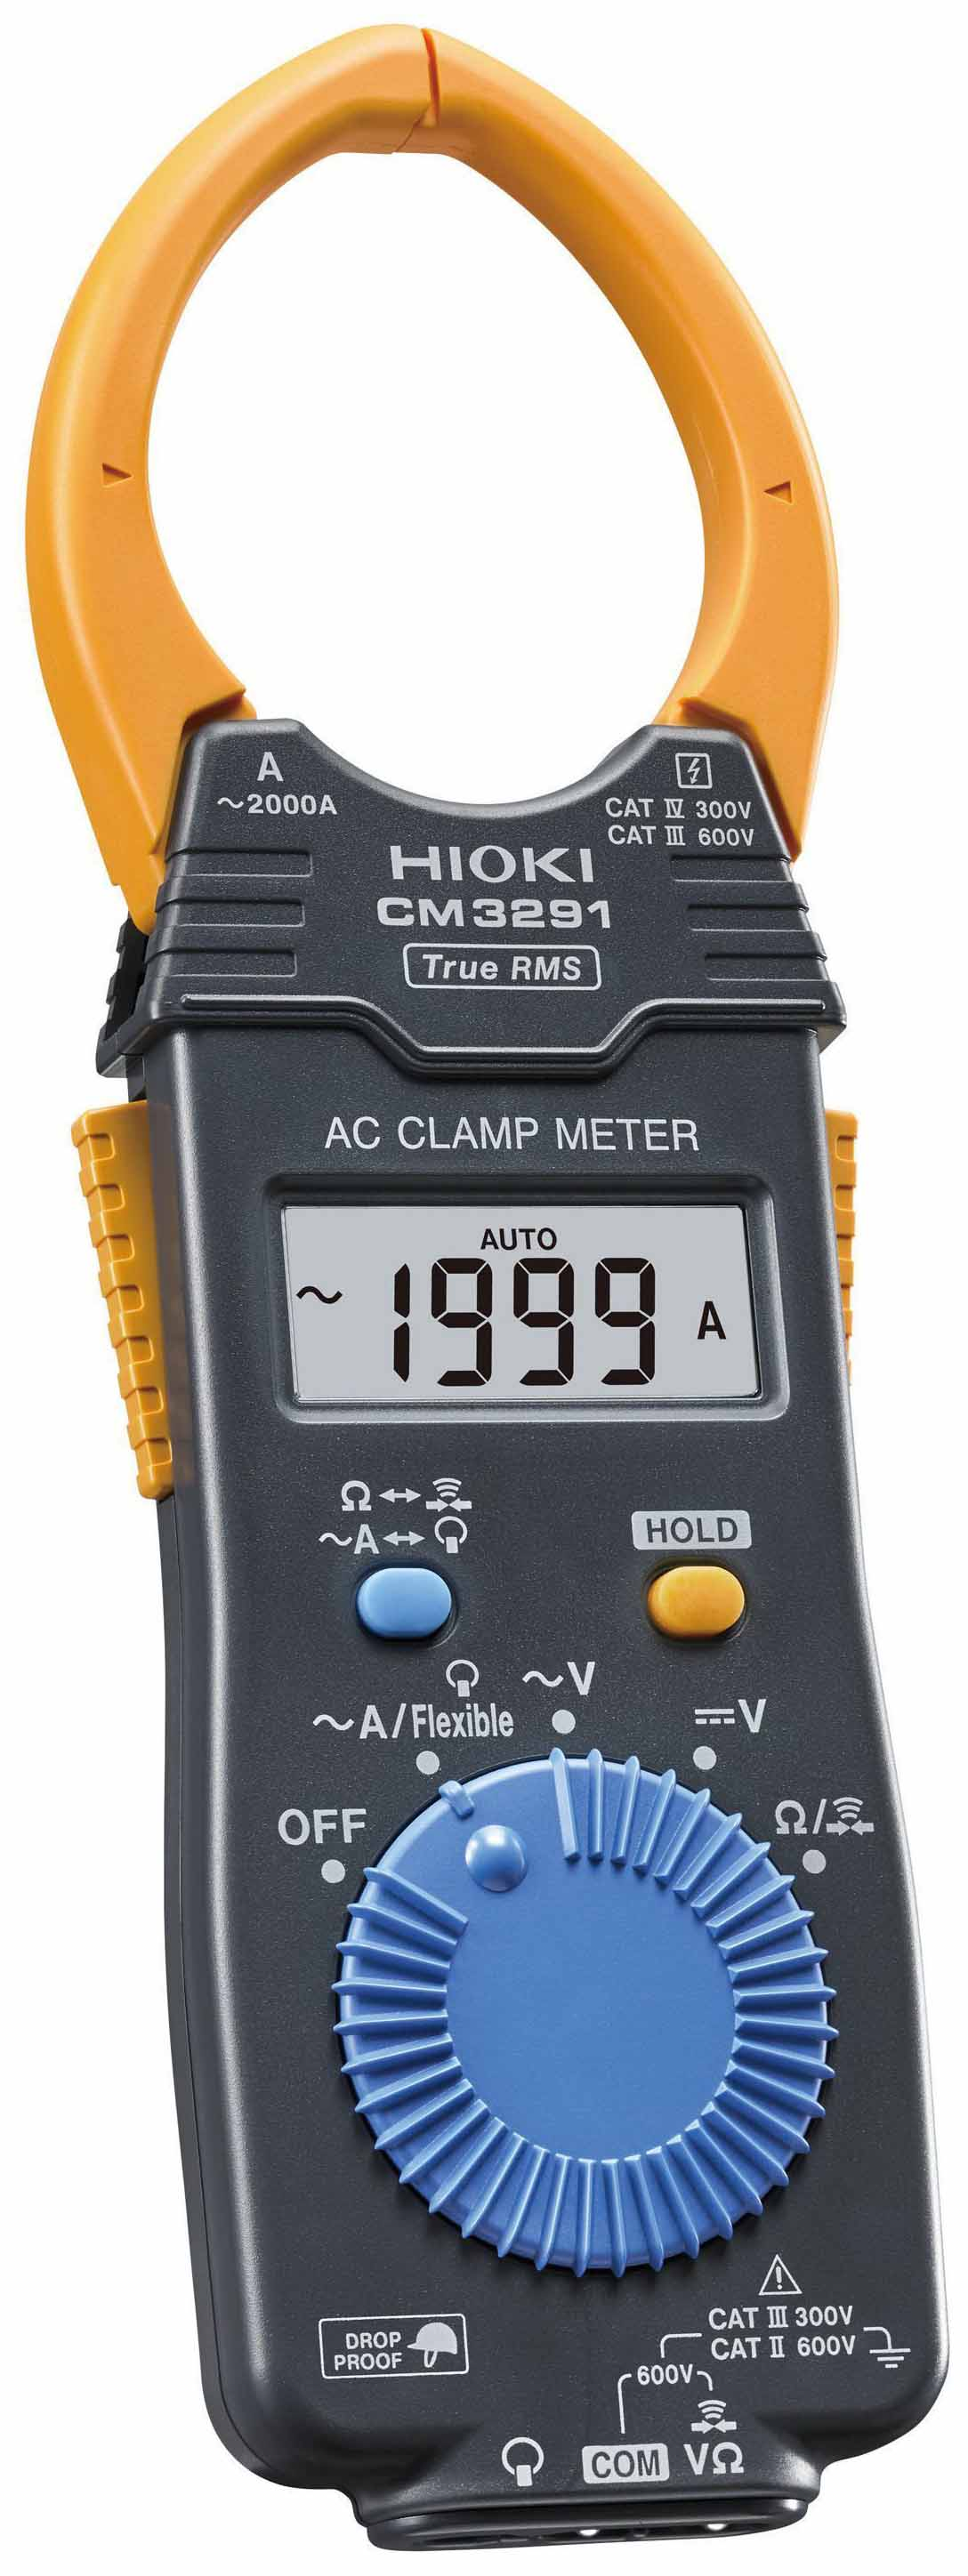 [PRESS RELEASE - Thailand] Hioki Launches AC Clamp Meter CM3281 and CM3291